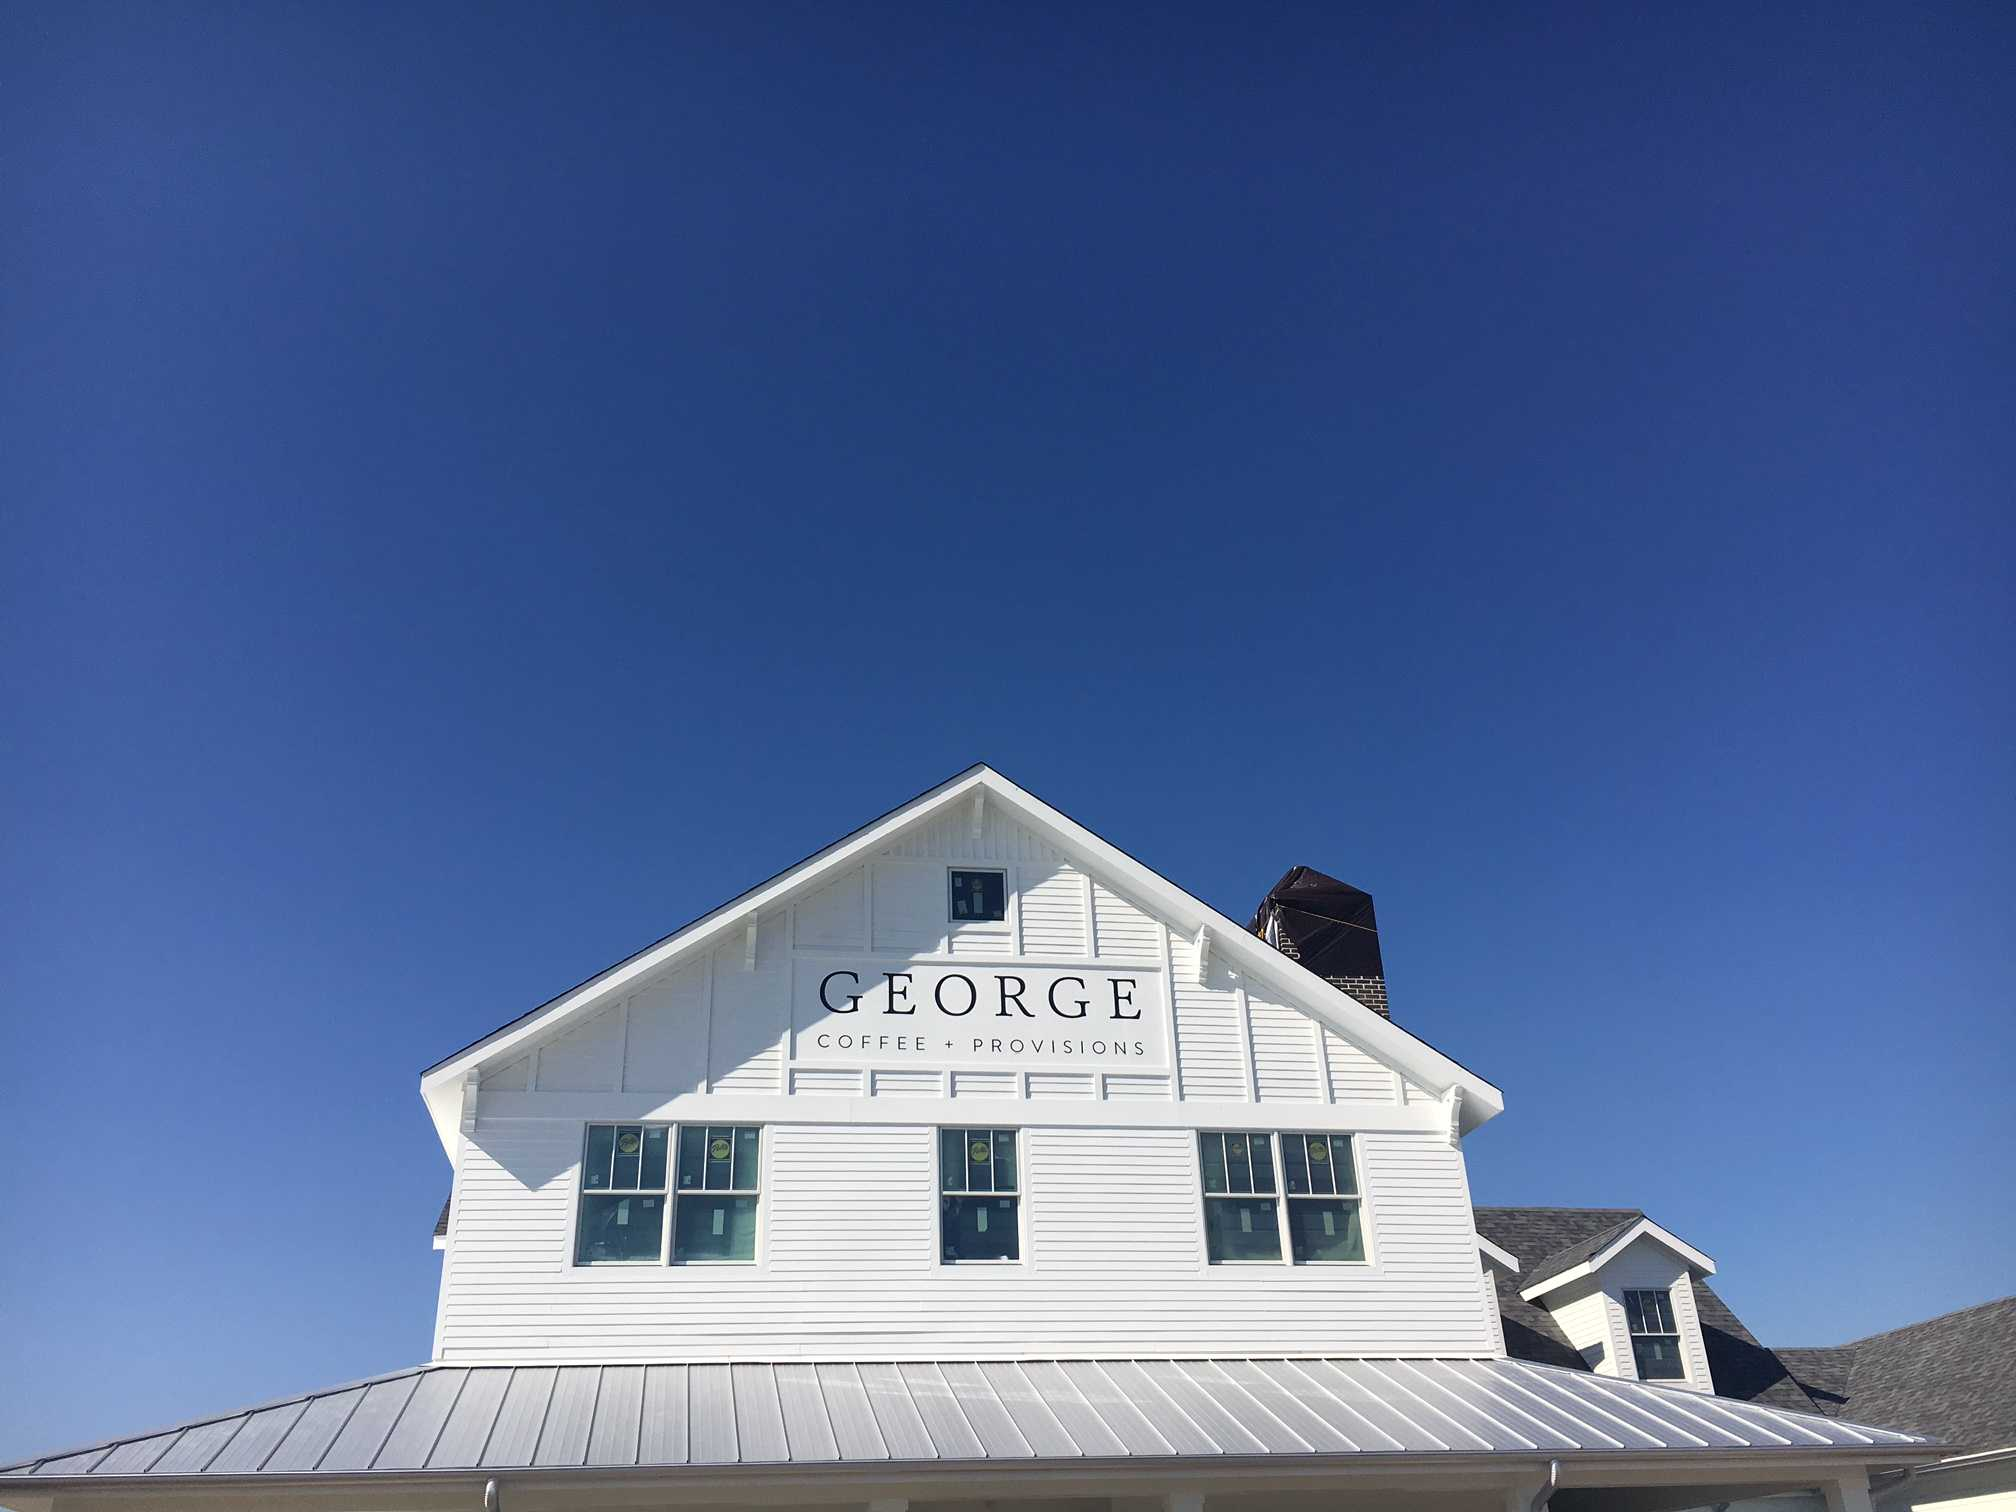 Planning to open in late spring of 2017, GEORGE Coffee + Provisions in Old Town Coppell will offer a variety of staple coffee shop items, while still including local resources such as products from the Coppell Farmer's Market.